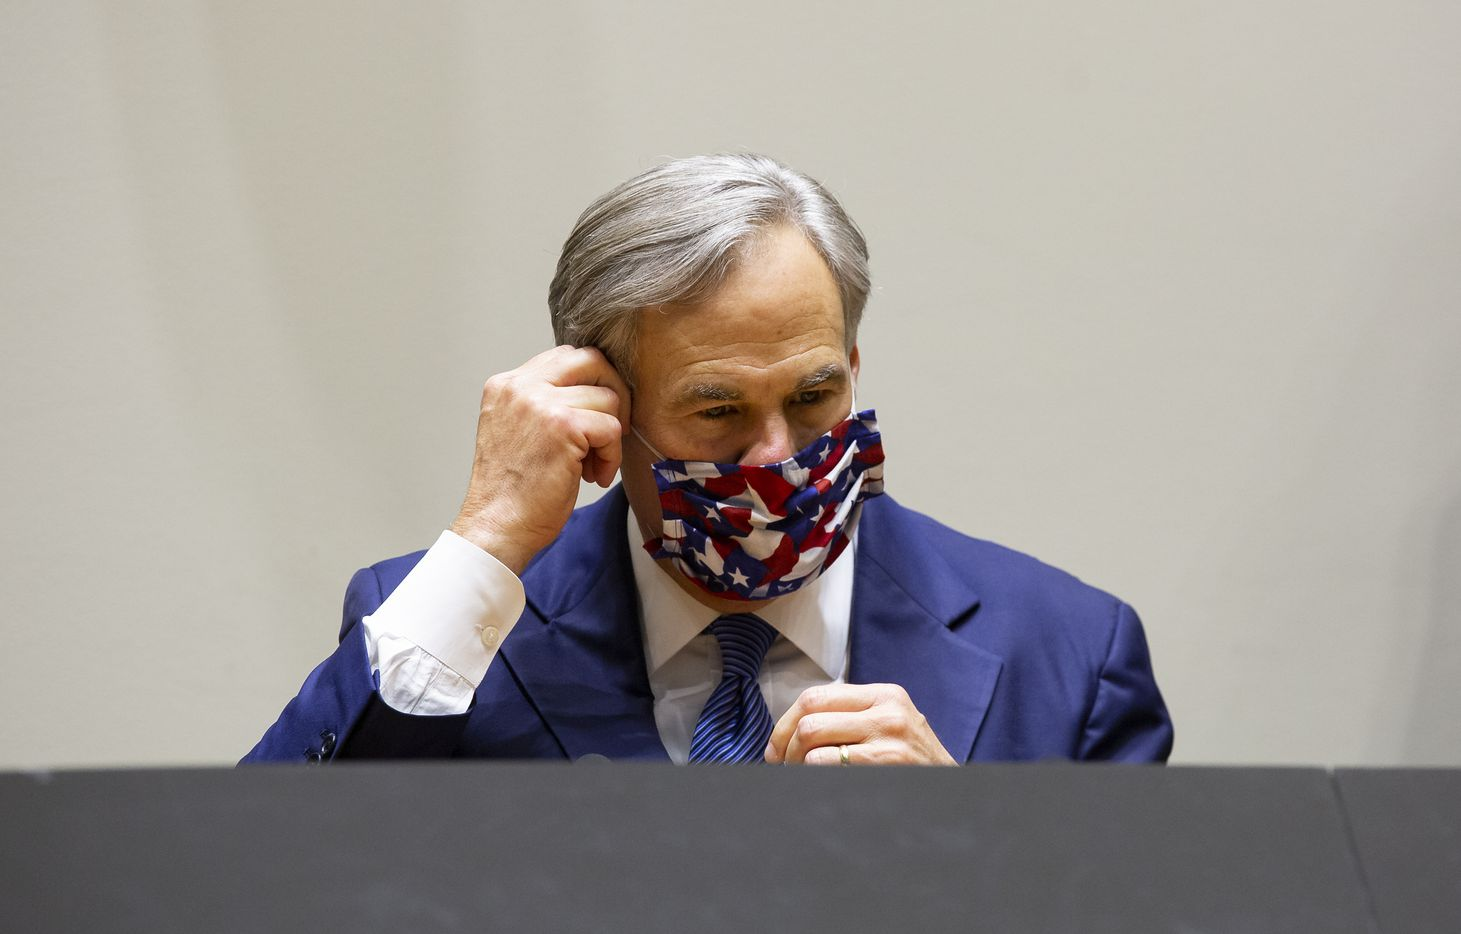 Governor Greg Abbott takes off his mask before speaking at a press conference on protest violence with local officials on Tuesday, June 2, 2020 at City Hall in Dallas.